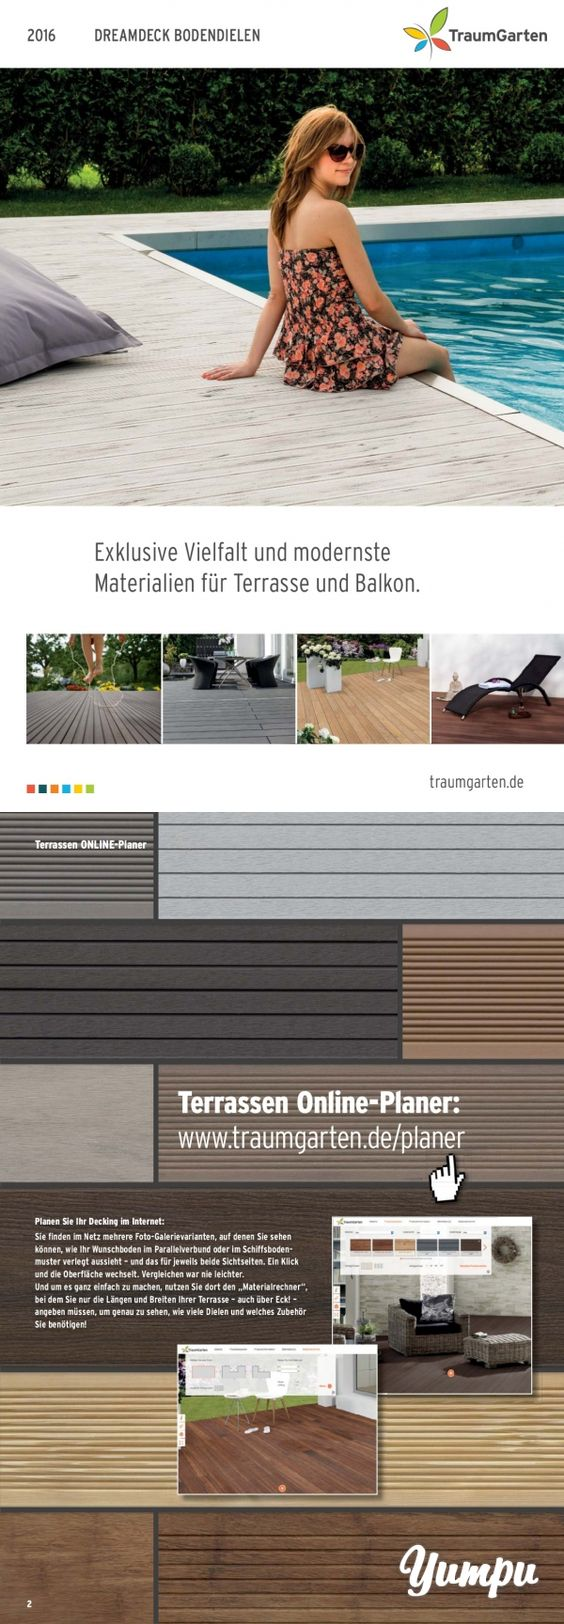 traumgarten trendige bel ge f r ihren balkon oder terrasse aktuelle bodenbel ge aus holz und. Black Bedroom Furniture Sets. Home Design Ideas